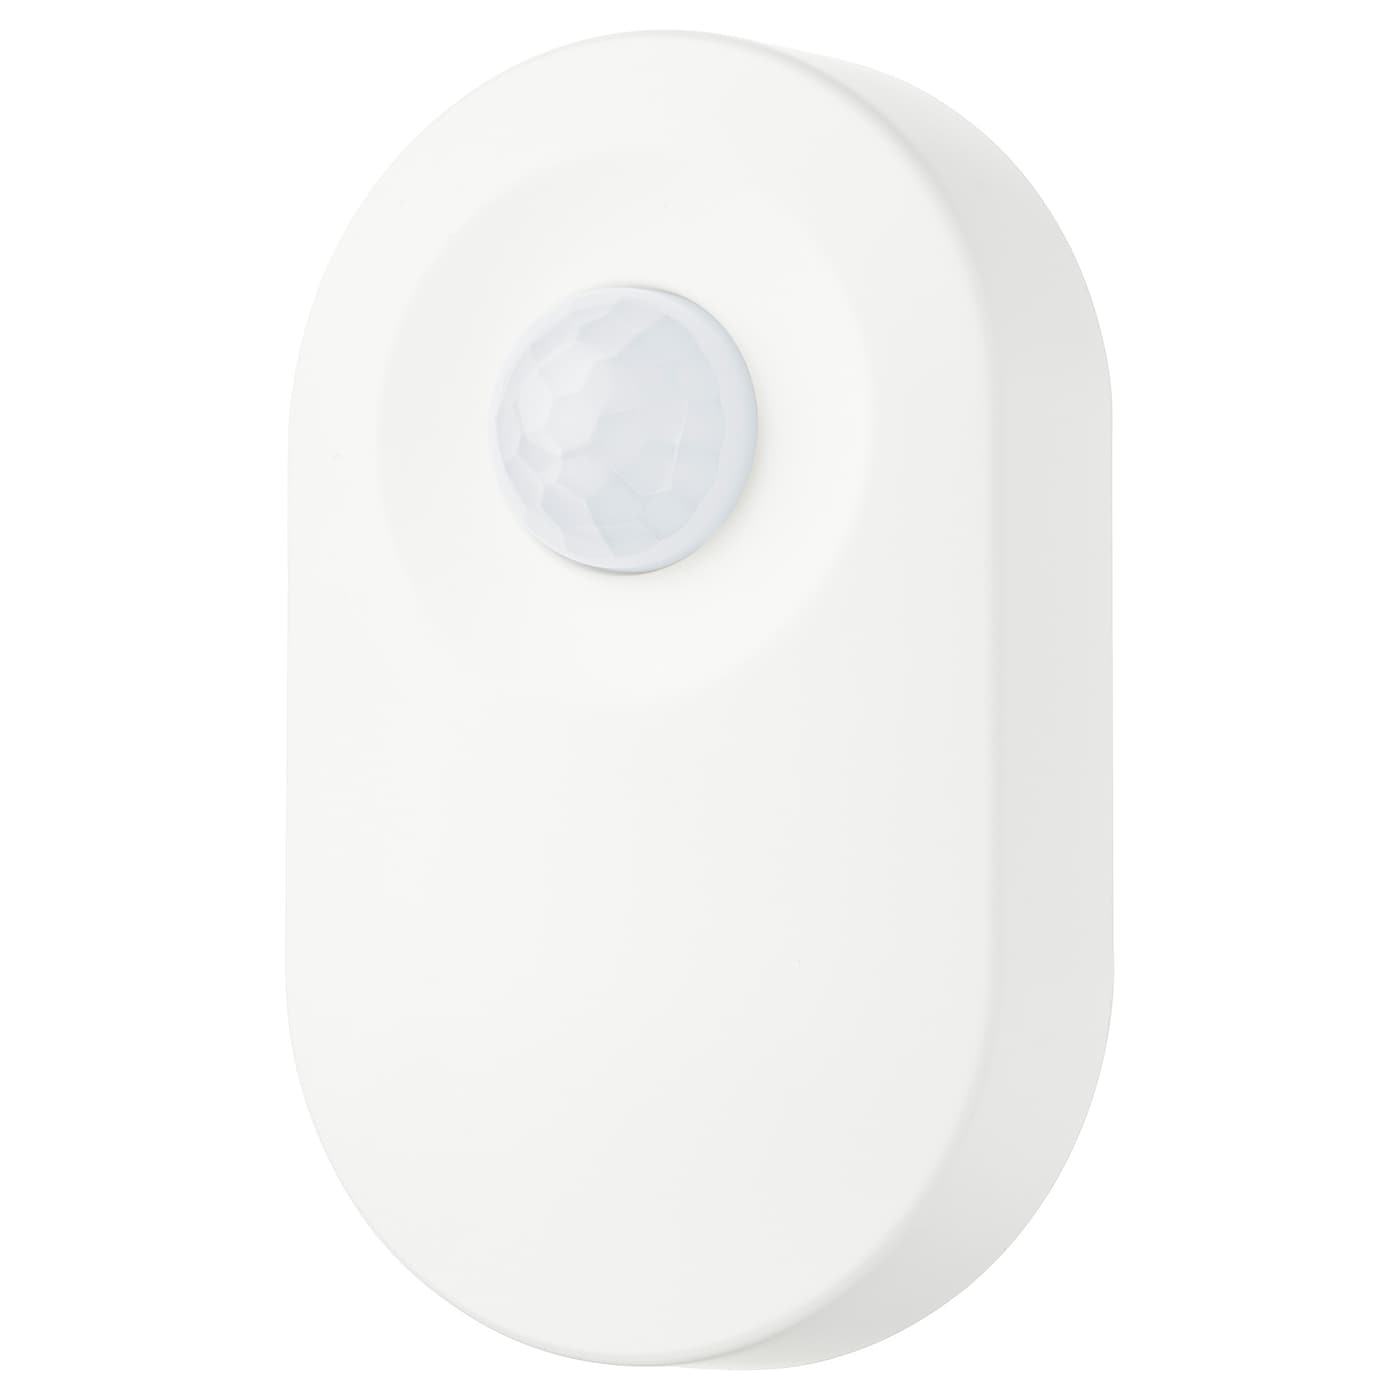 IKEA TRÅDFRI wireless motion sensor